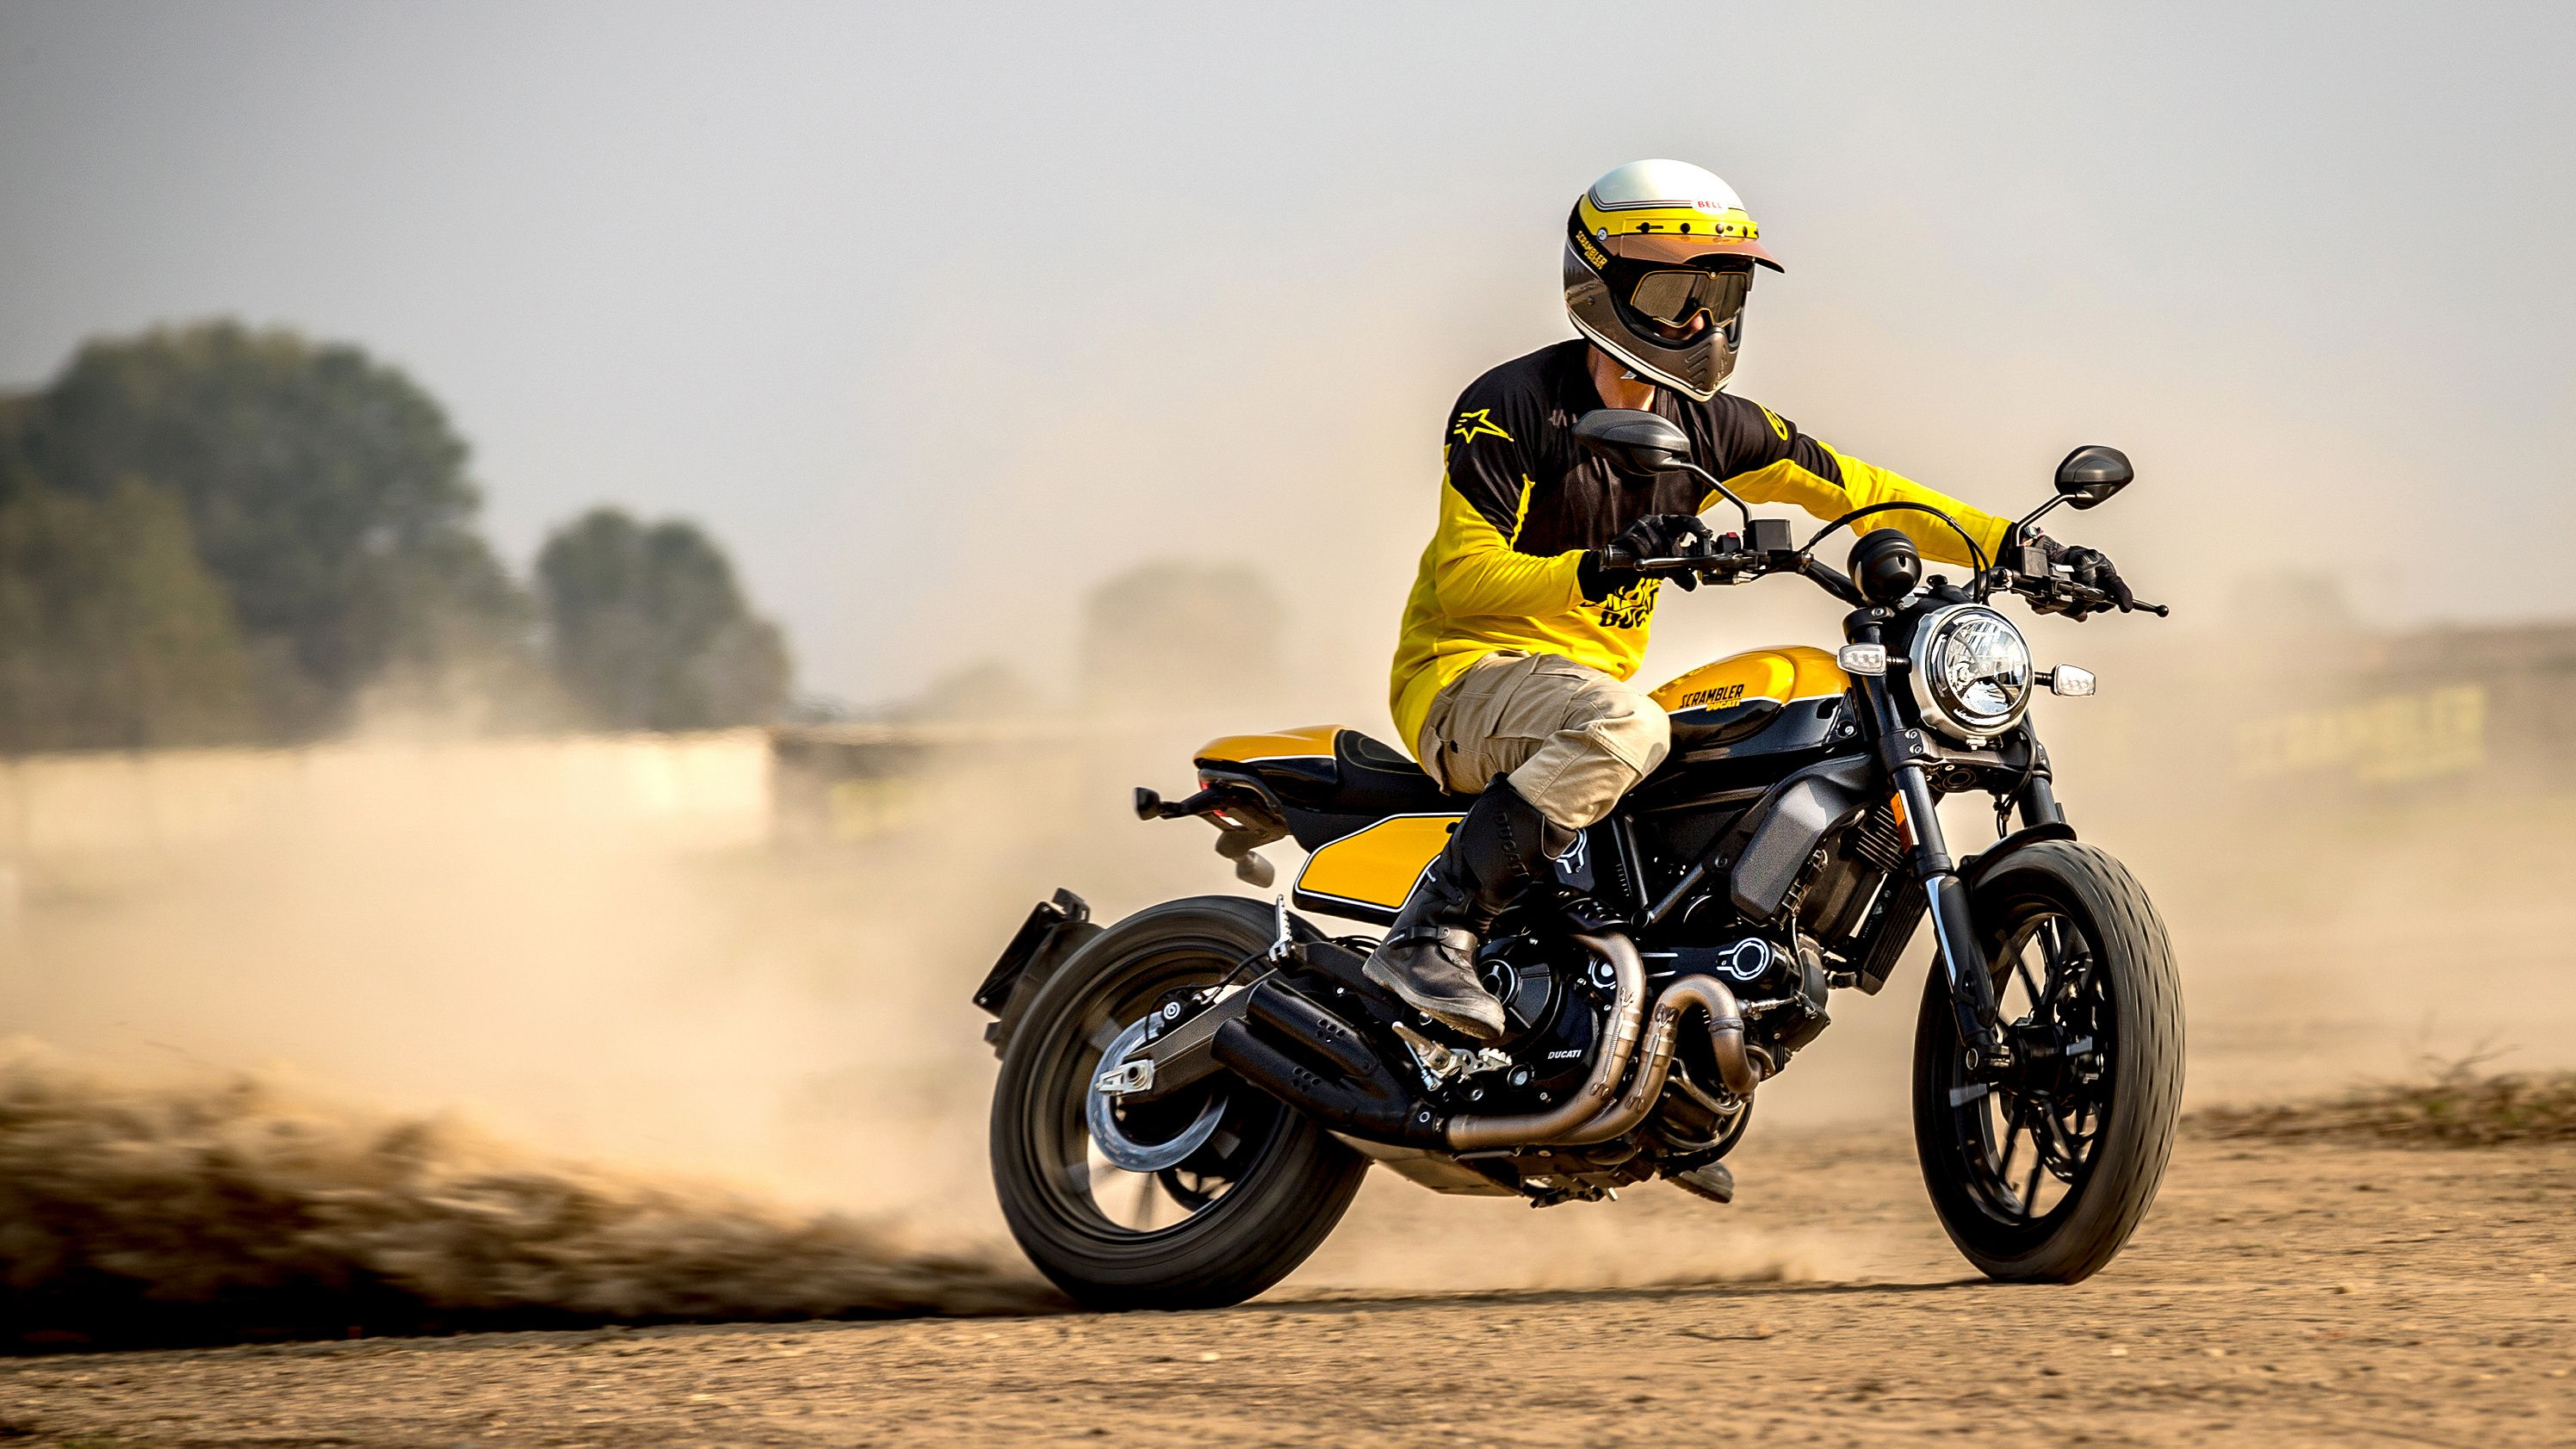 2019 2020 Ducati Scrambler Full Throttle Top Speed Ducati